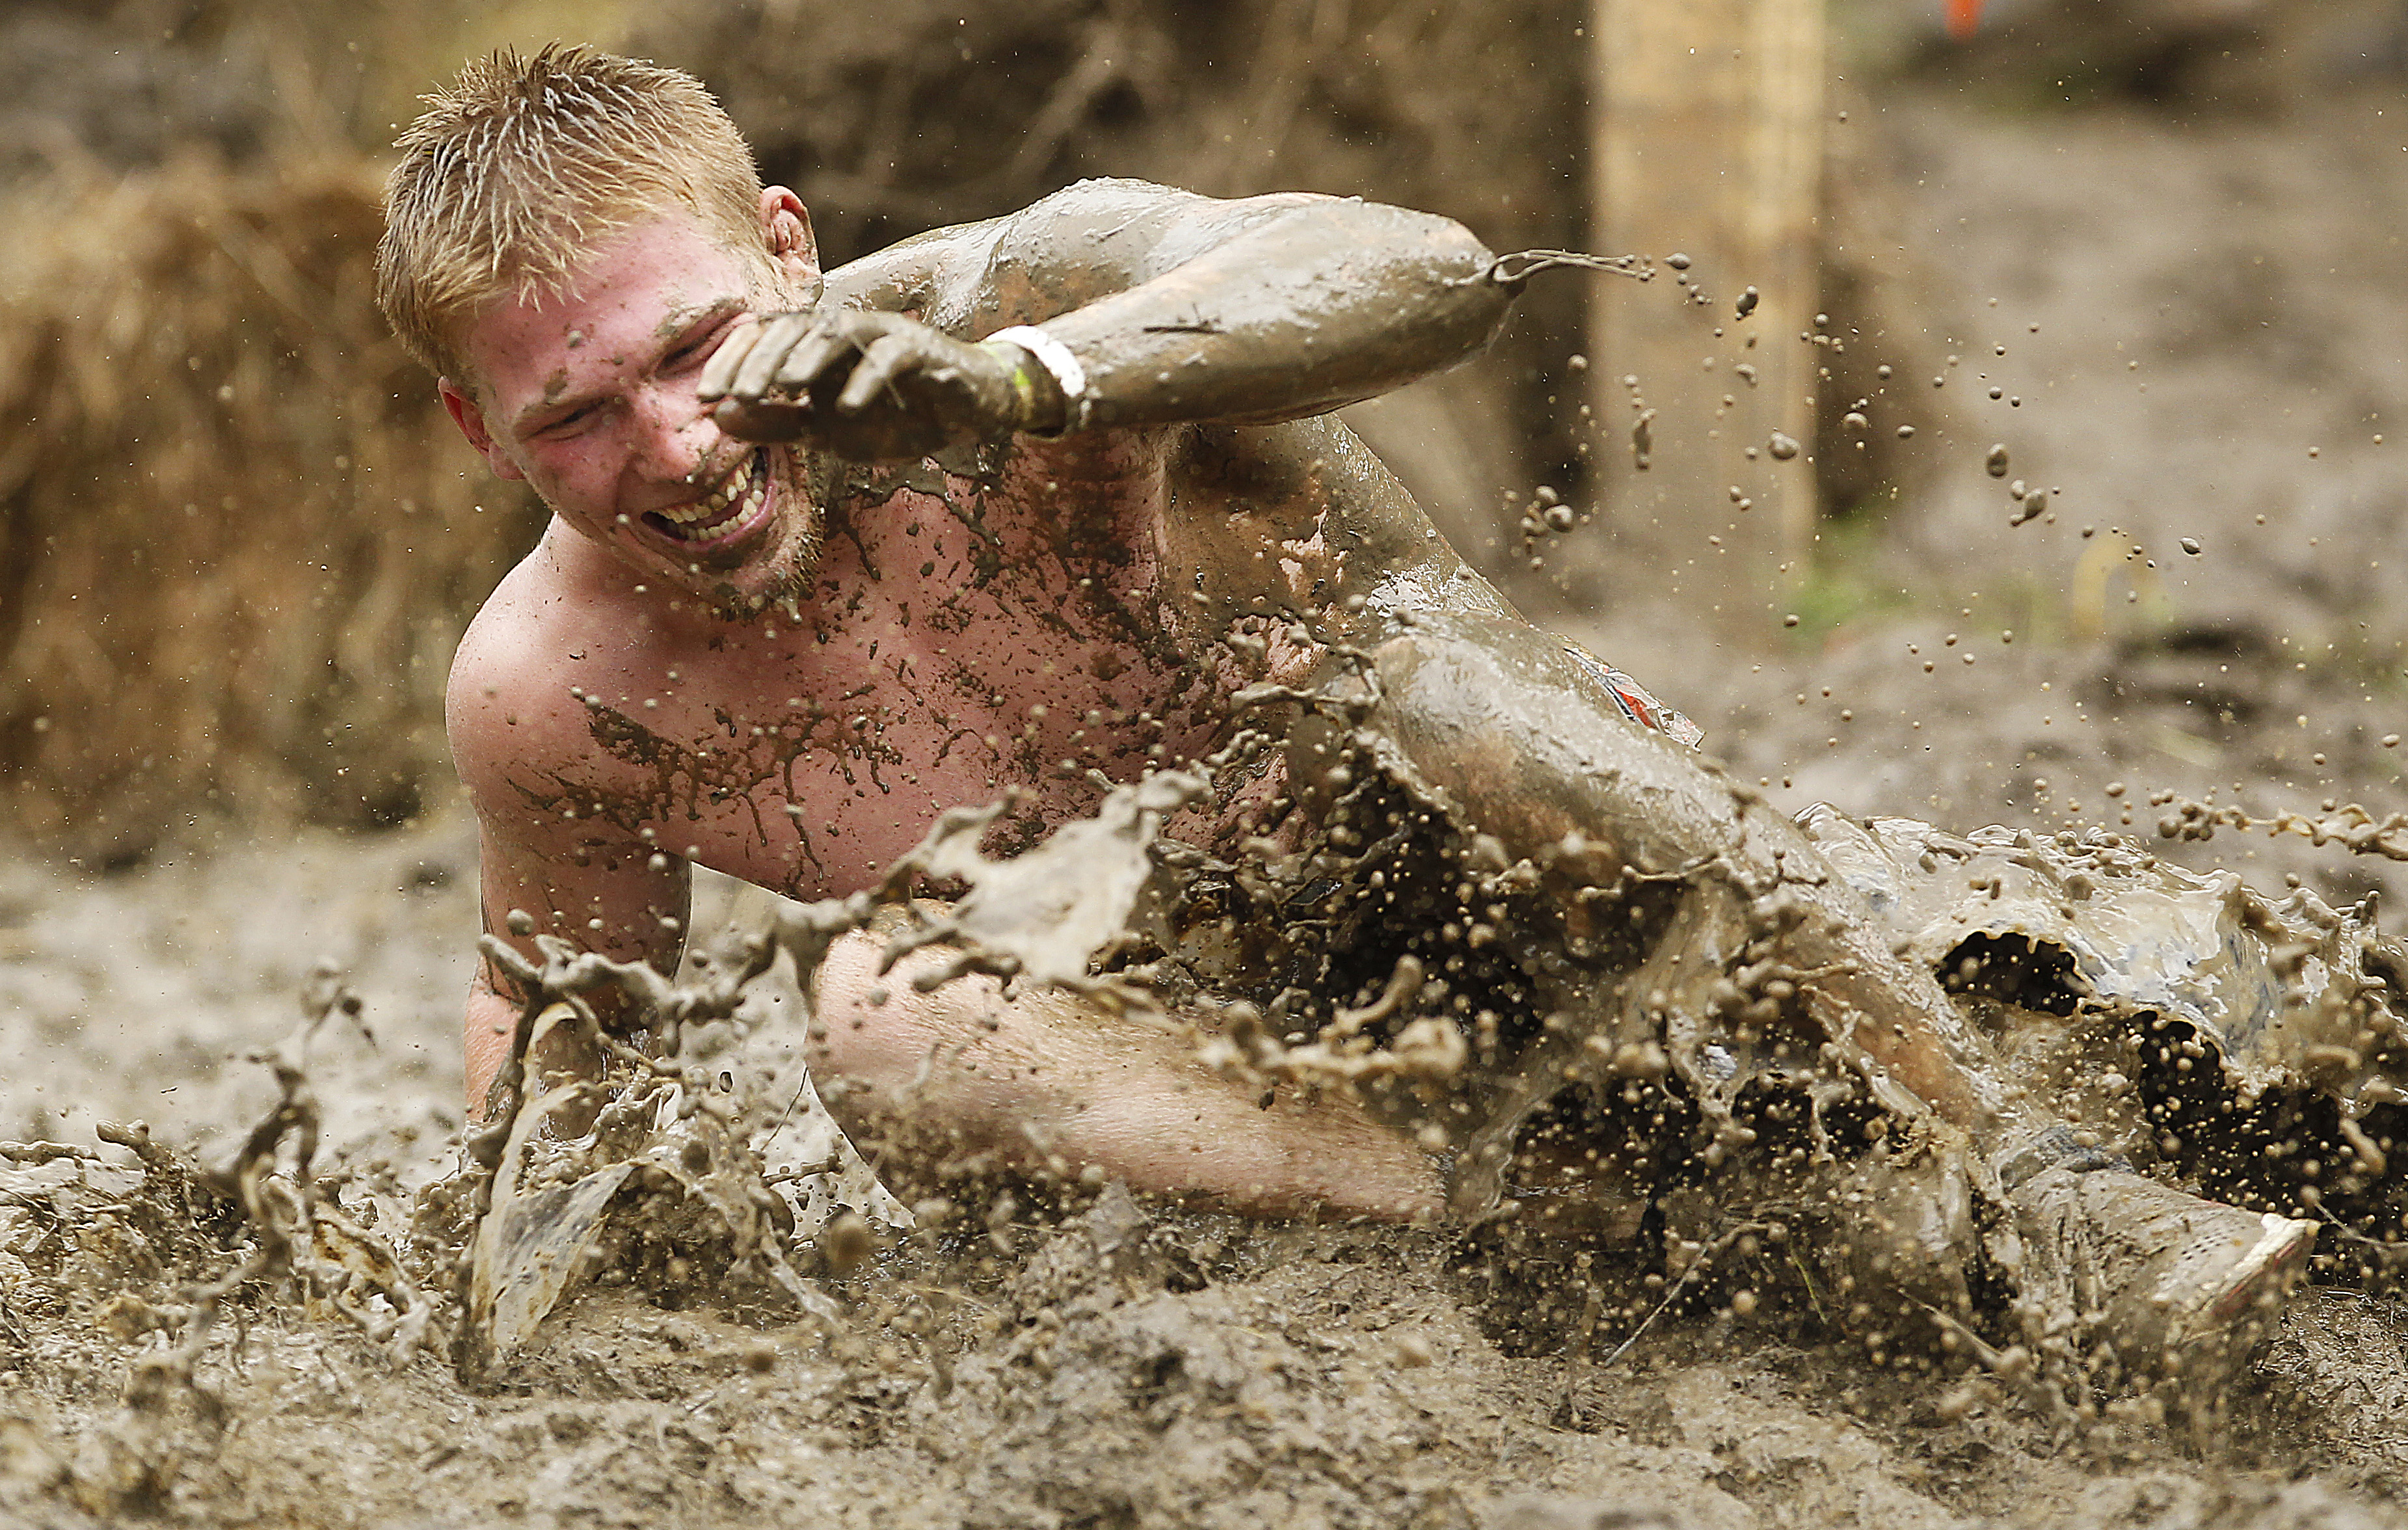 Sliding in the Mud